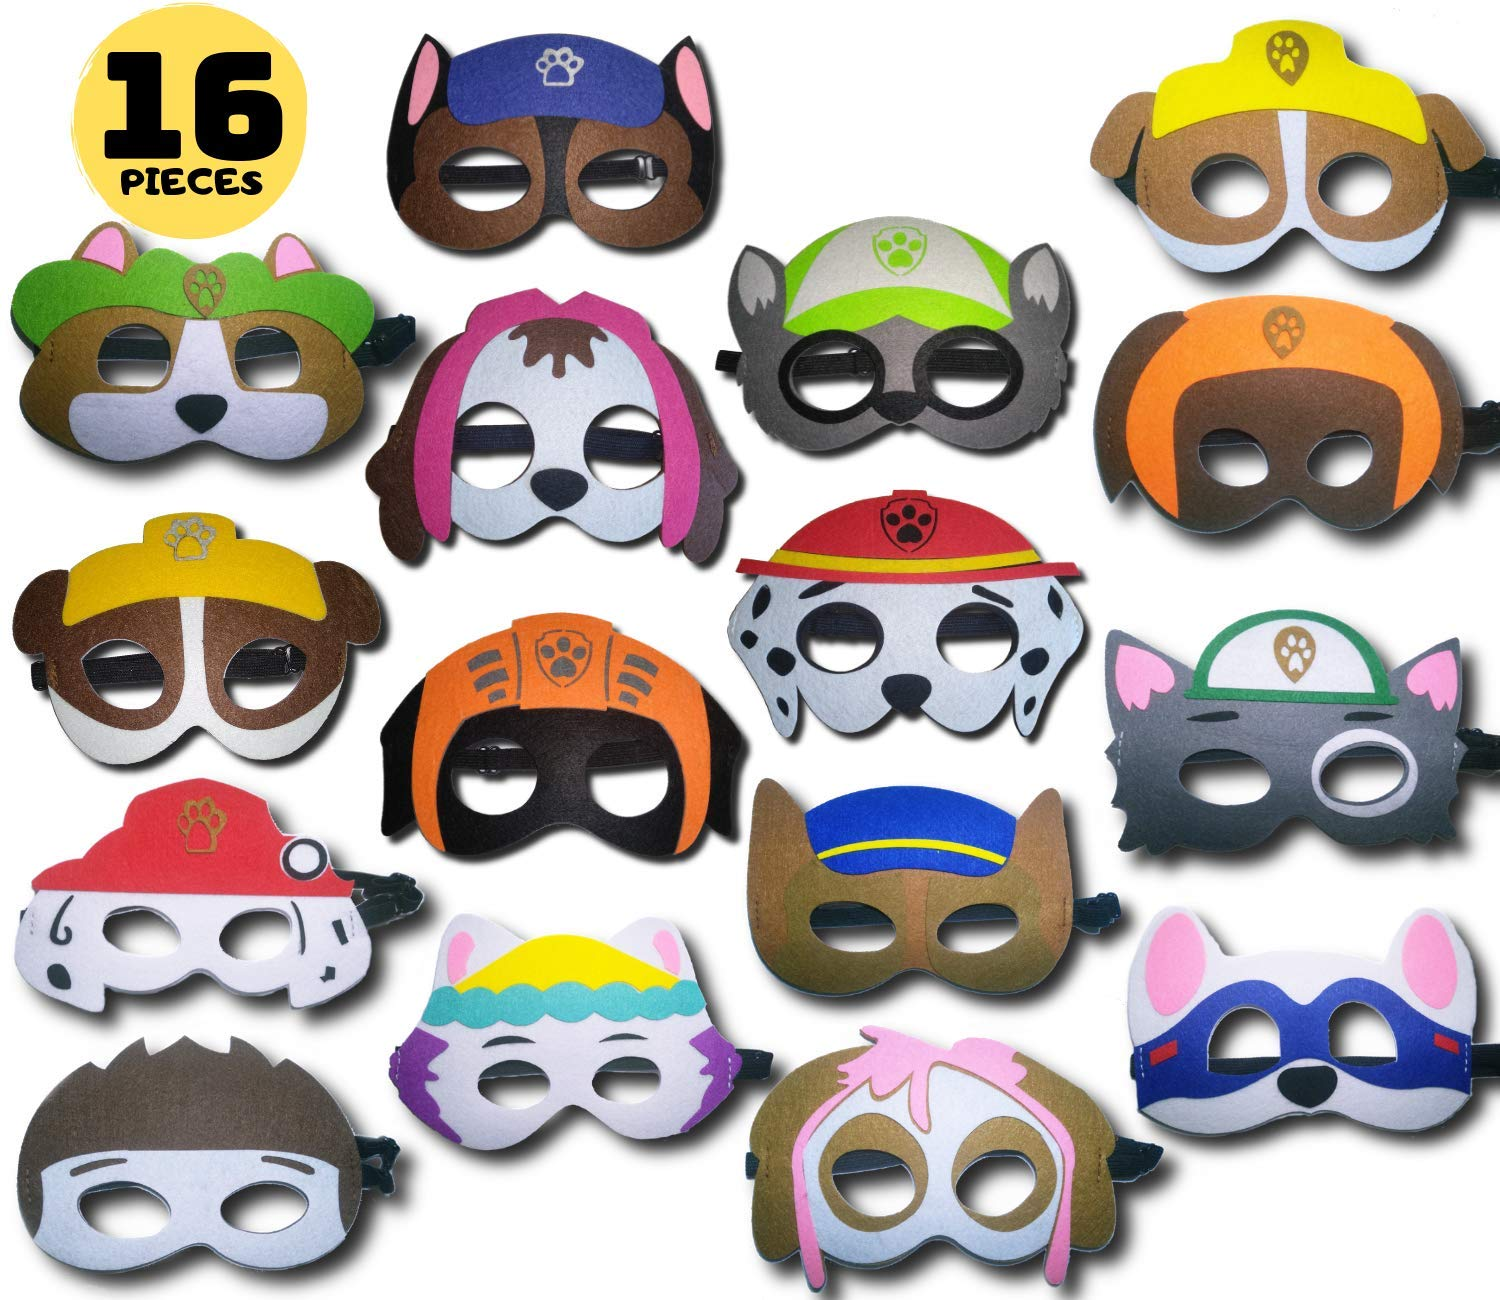 TONSY Paw Dog Patrol Masks Party Favors for Boys and Girls (16 Packs) Soft Felt and Adjustable Elastic - Paw Dog Patrol Party Supplies with 16 Different Types for Birthdays